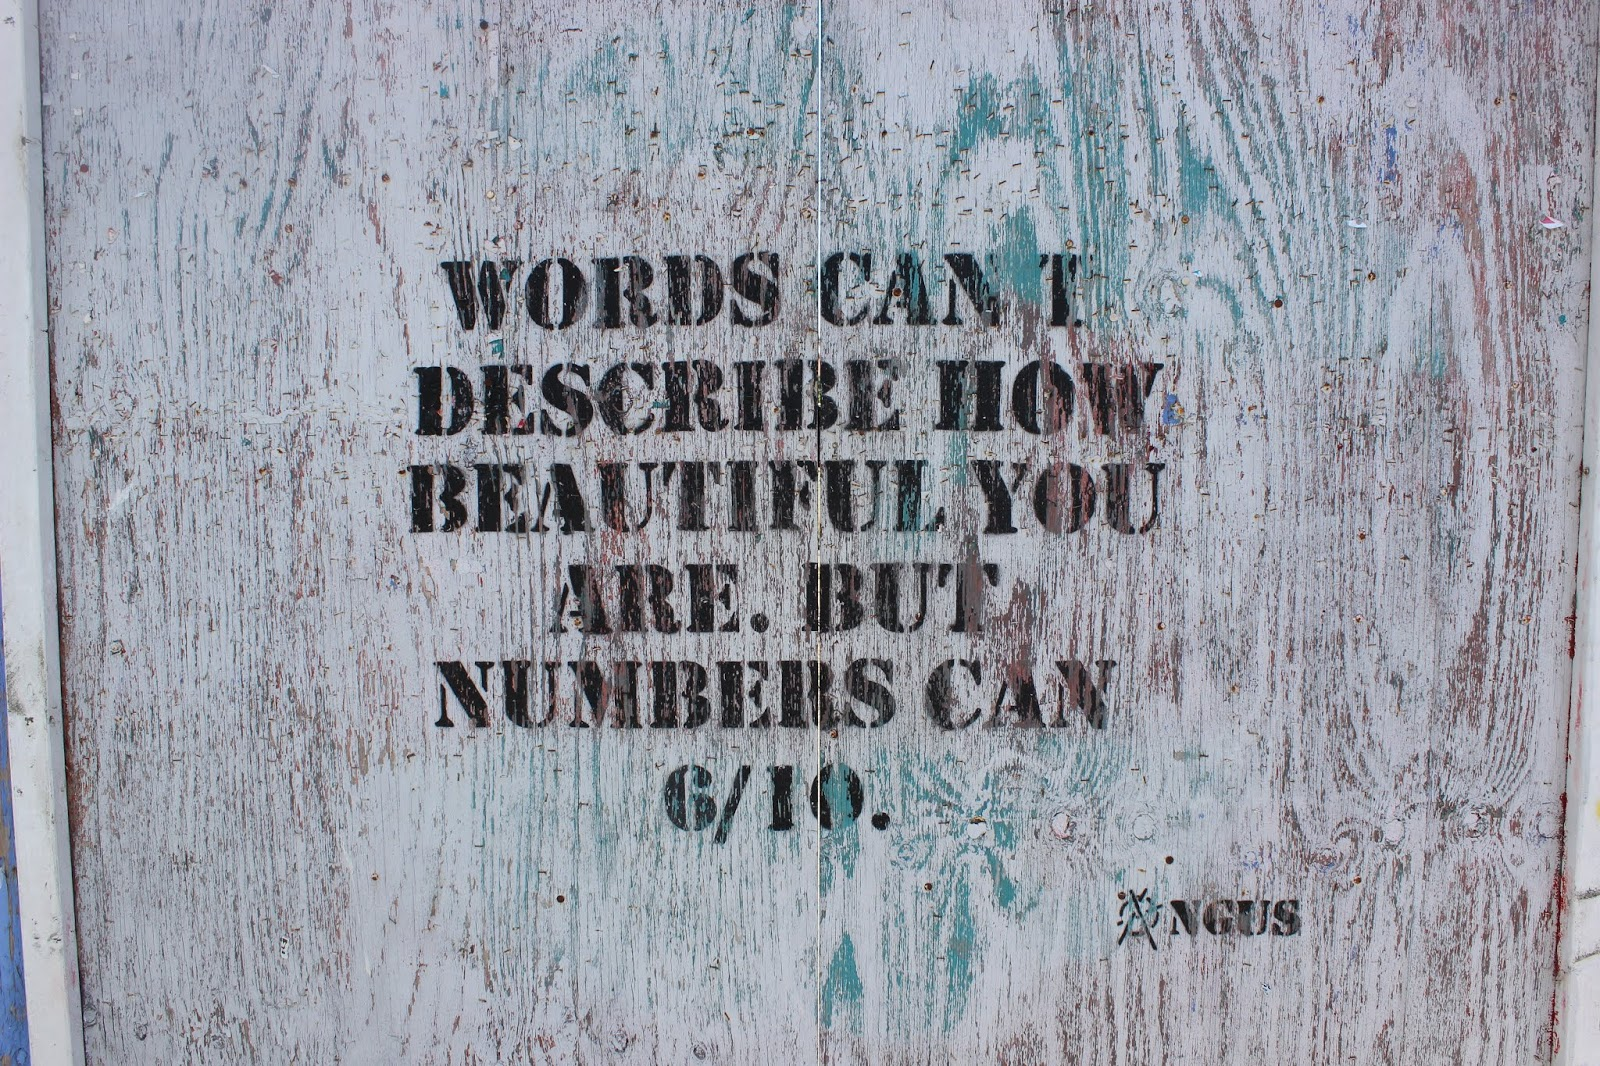 Wall graffiti stating 'Words can't describe how beautiful you are, but numbers can. 6/10'.